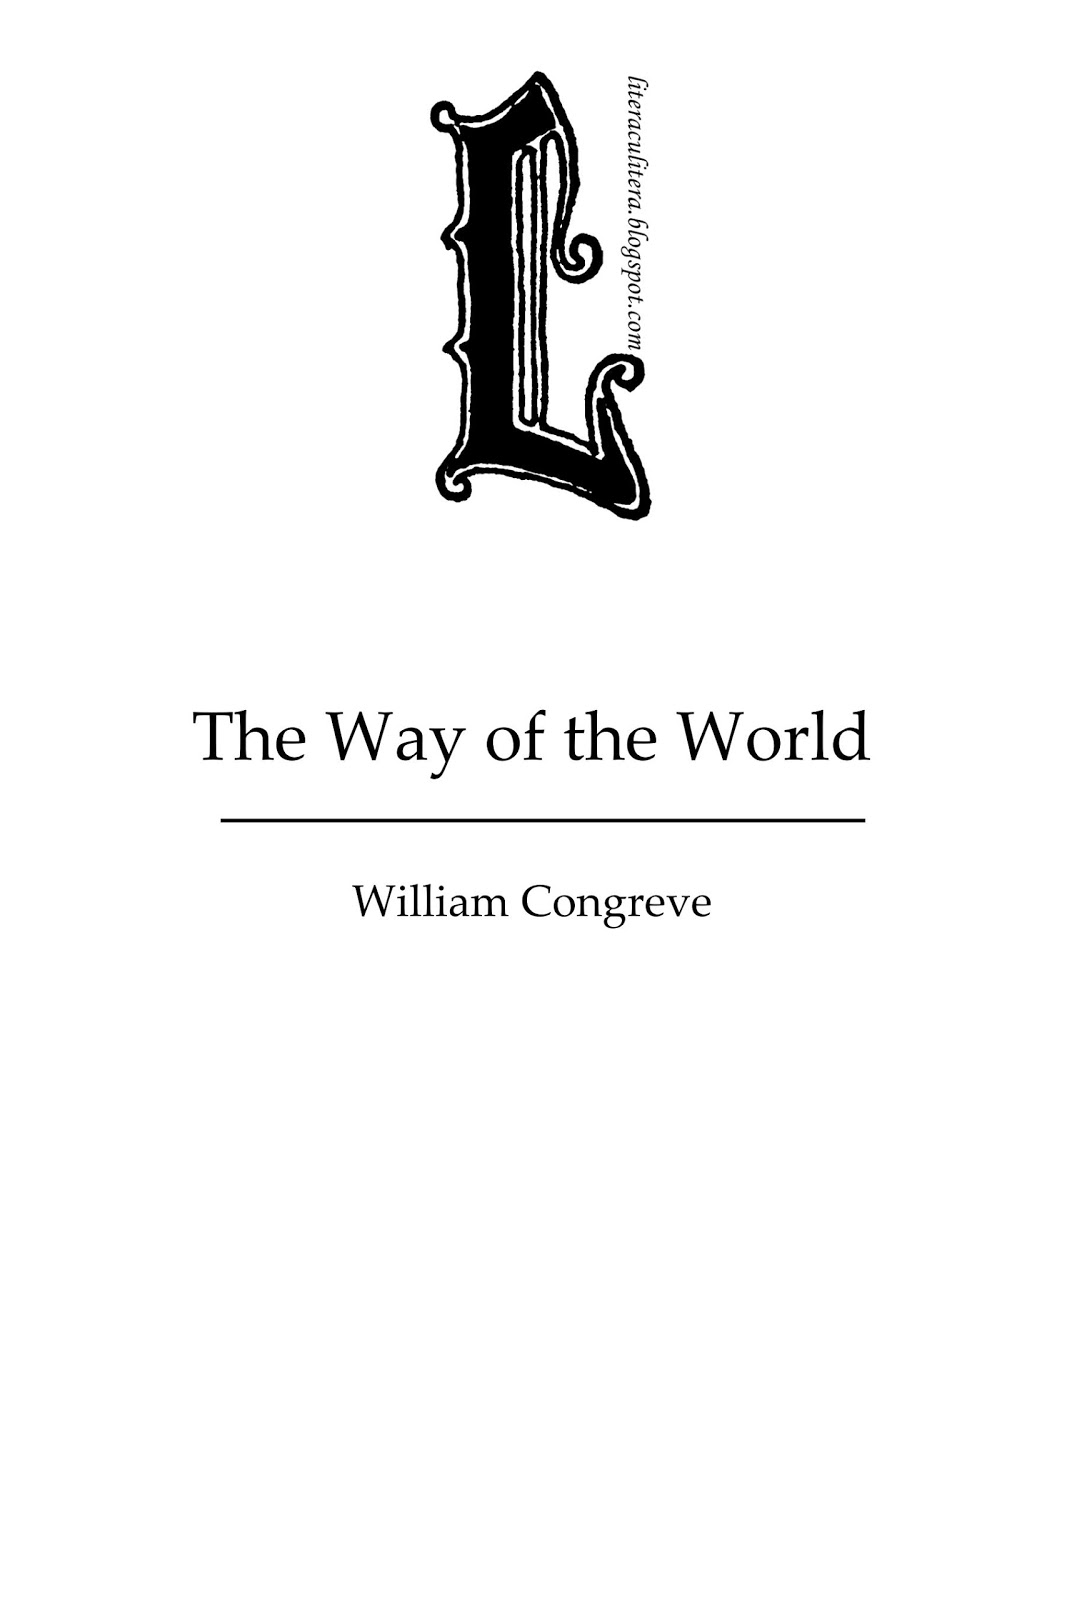 The Way of The World- William Congreve (read online